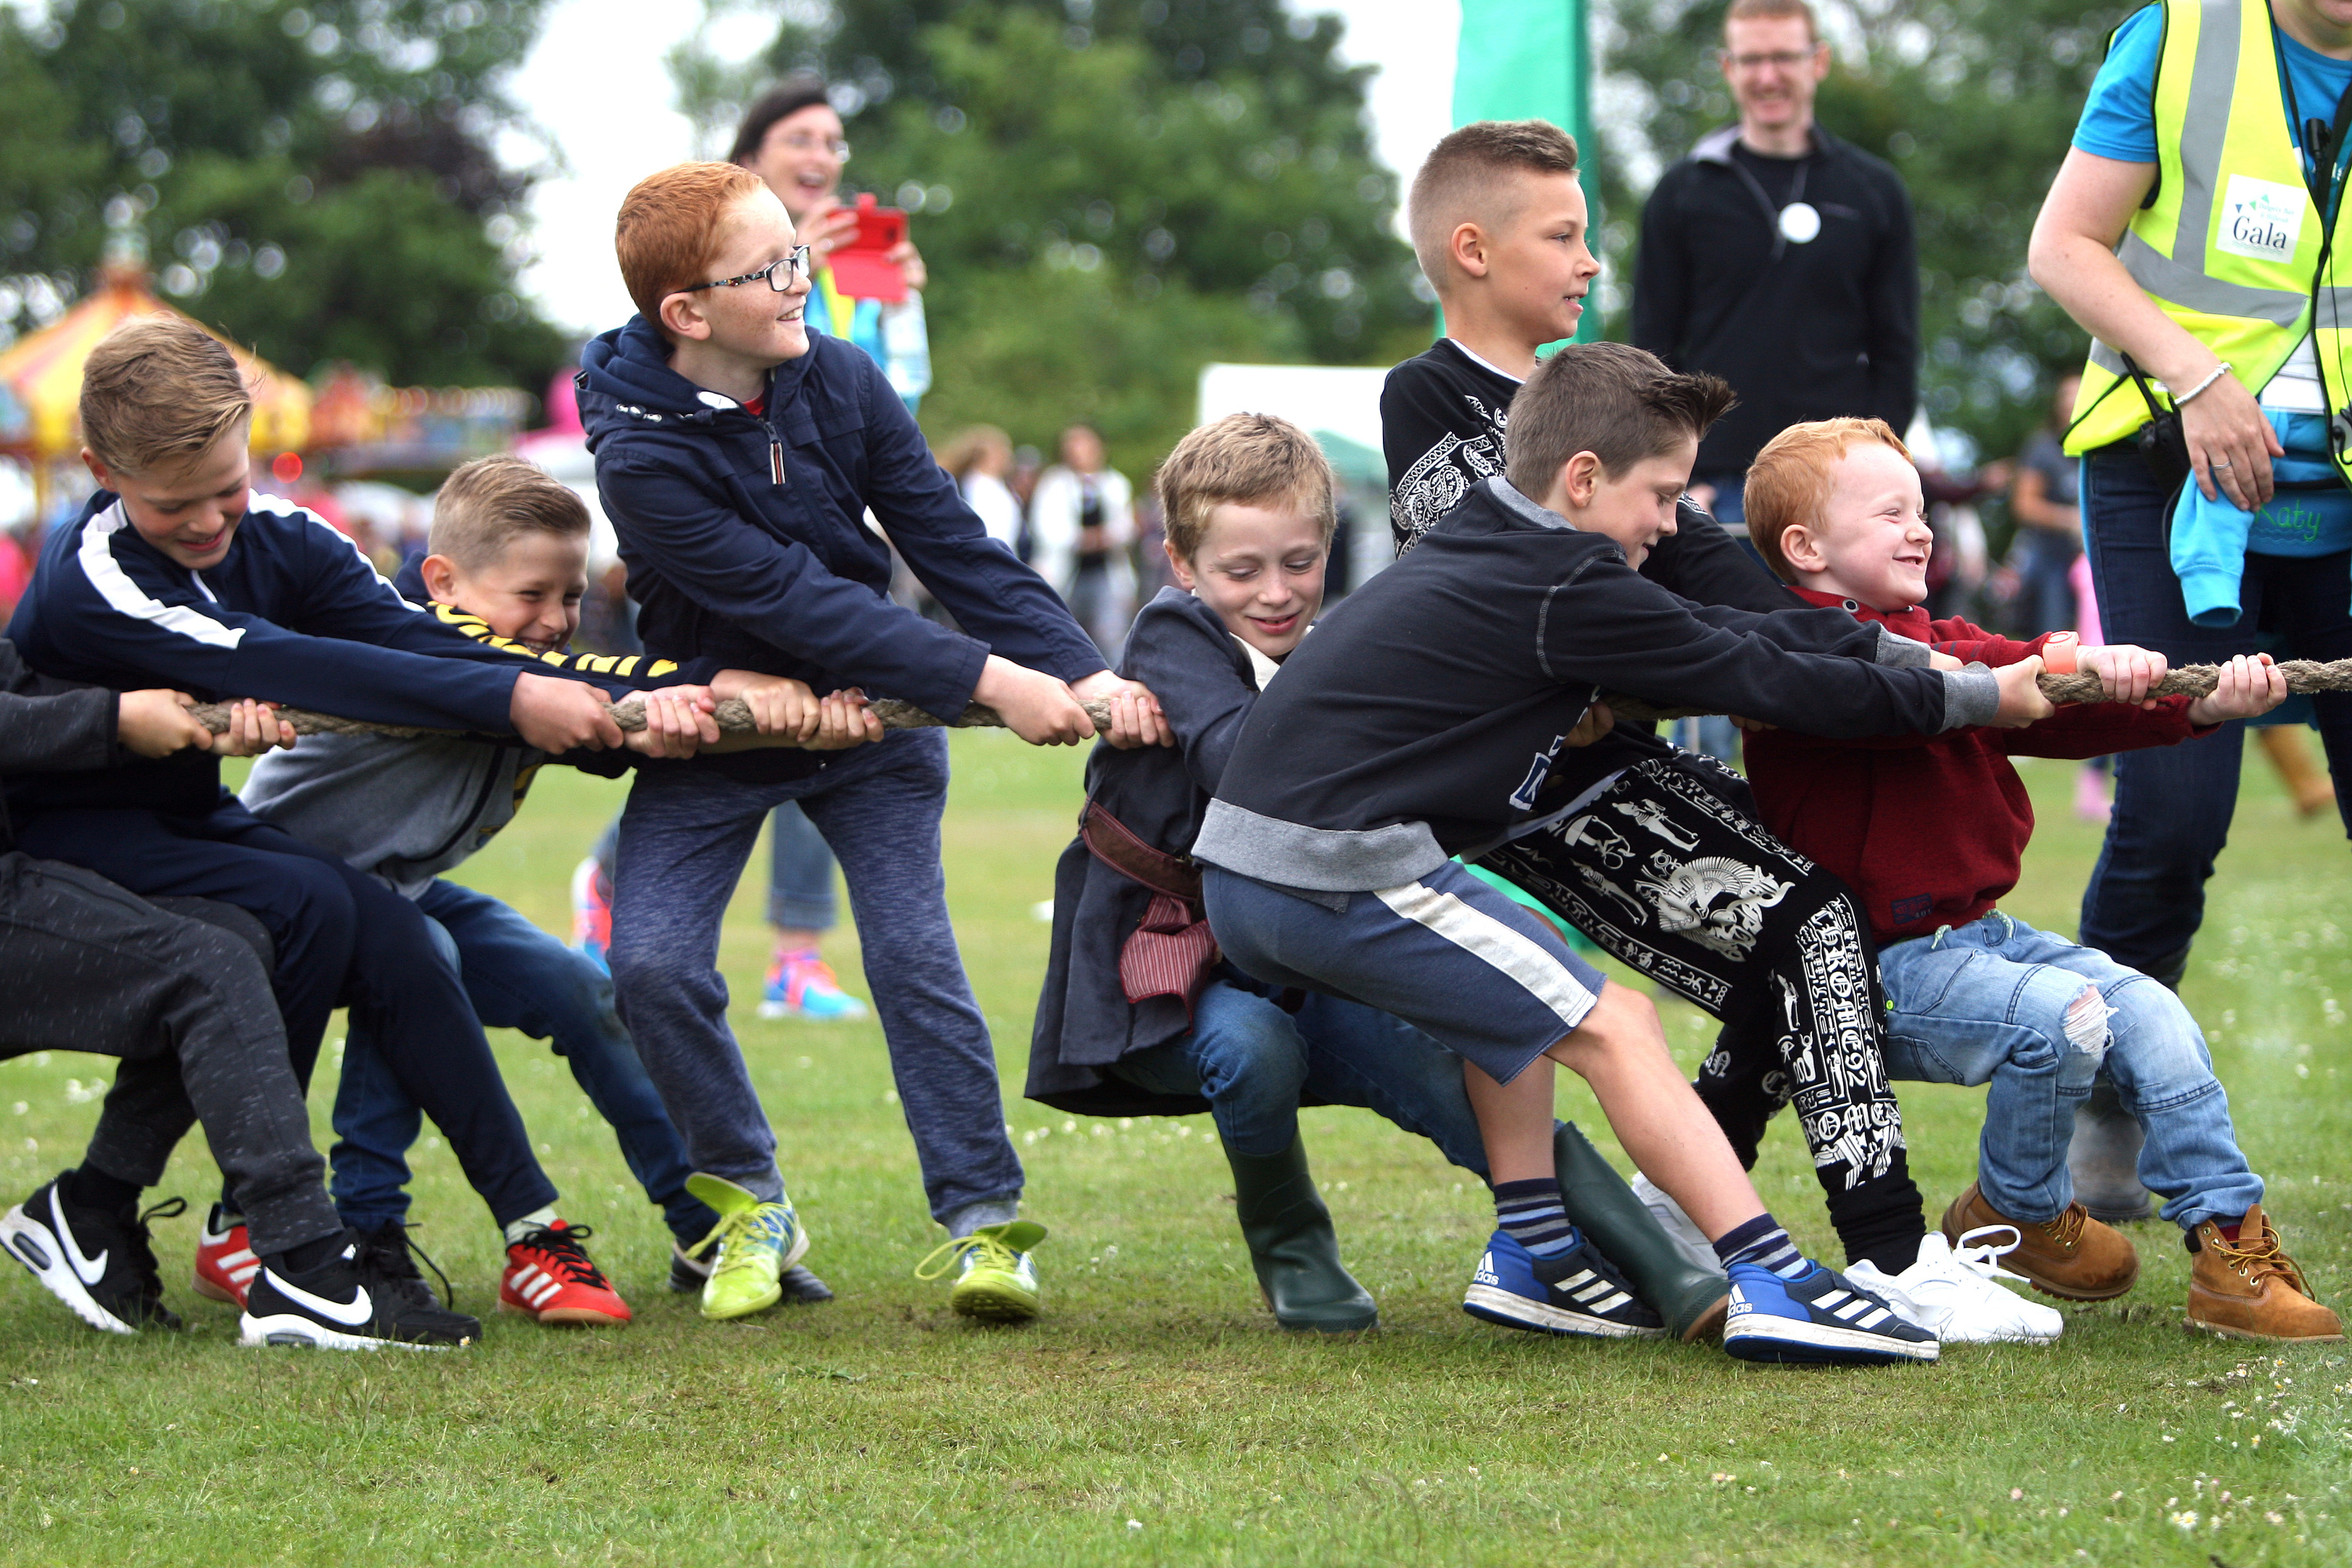 The girls v boys tug o' war at Dalgety Bay and Hillend Gala, which the girls won twice.